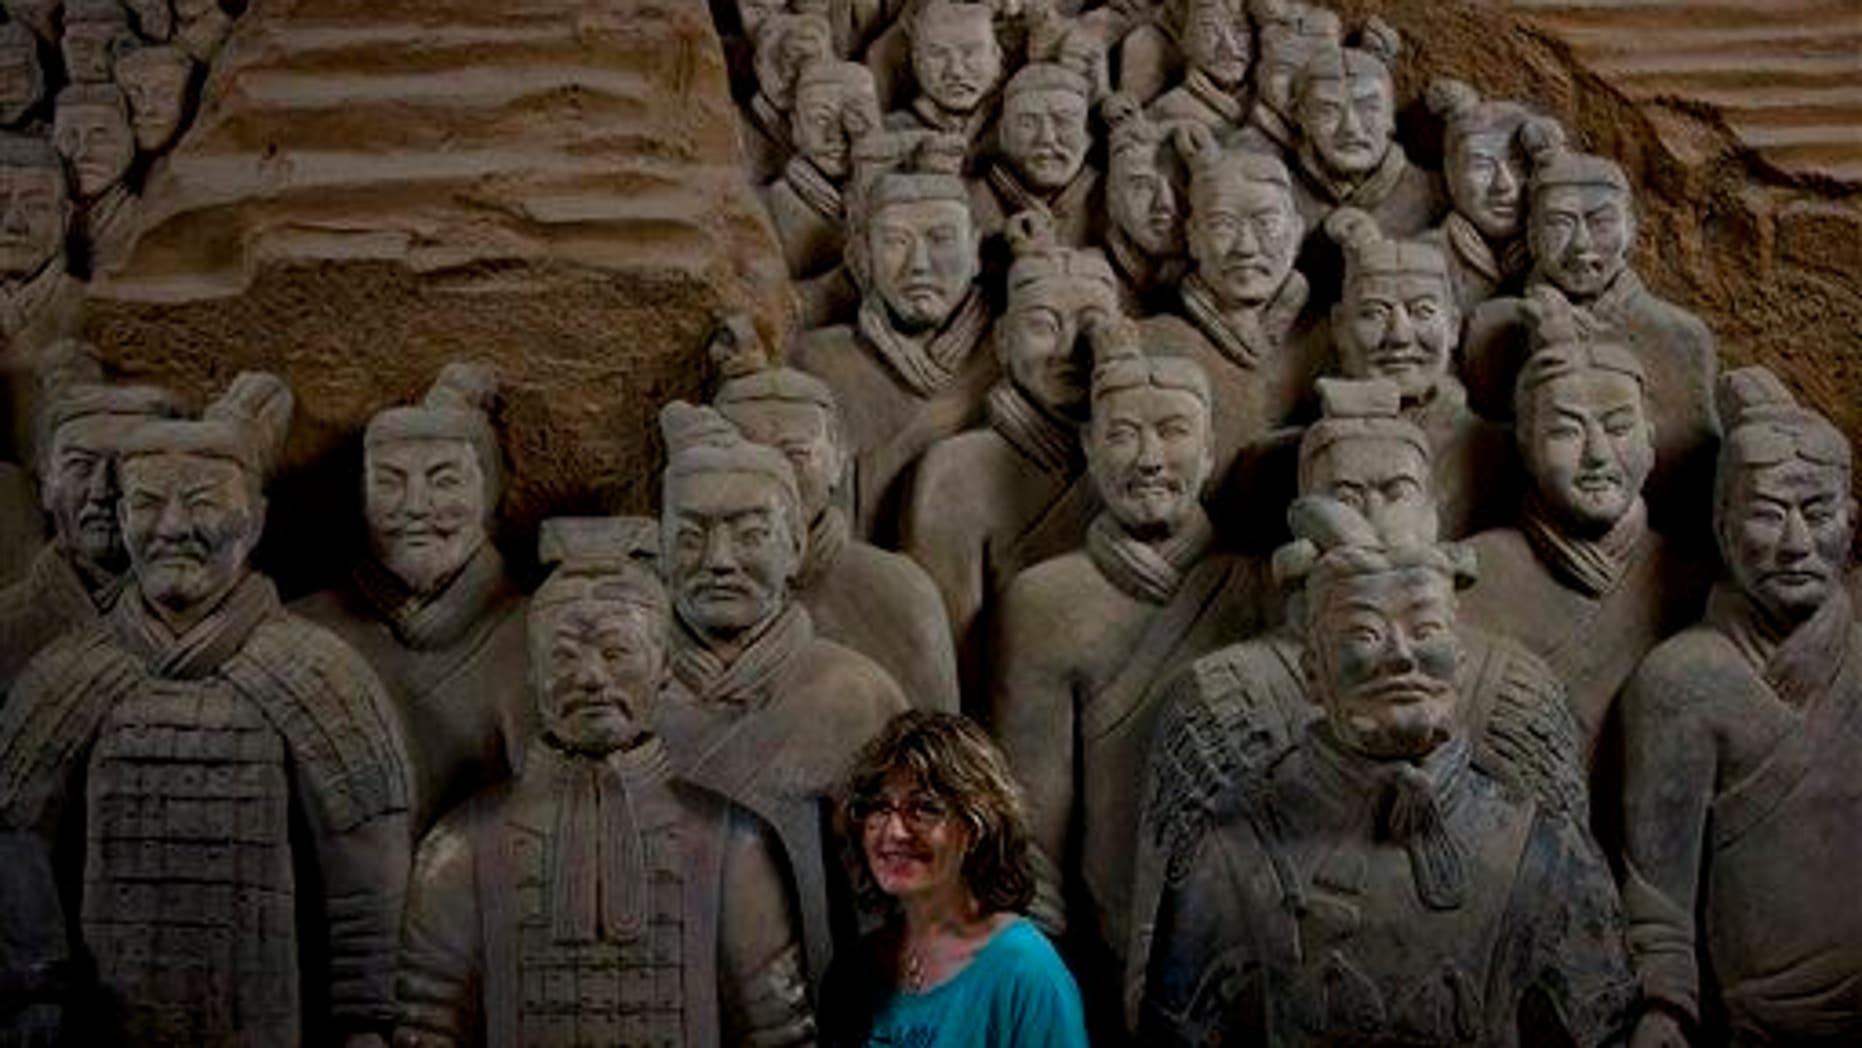 In this July 30, 2013 photo, a tourist stands near a terracotta warrior replica as she poses for a photo at the Museum of Qin Terracotta Warriors and Horses in Xi'an, in China's Shaanxi province.